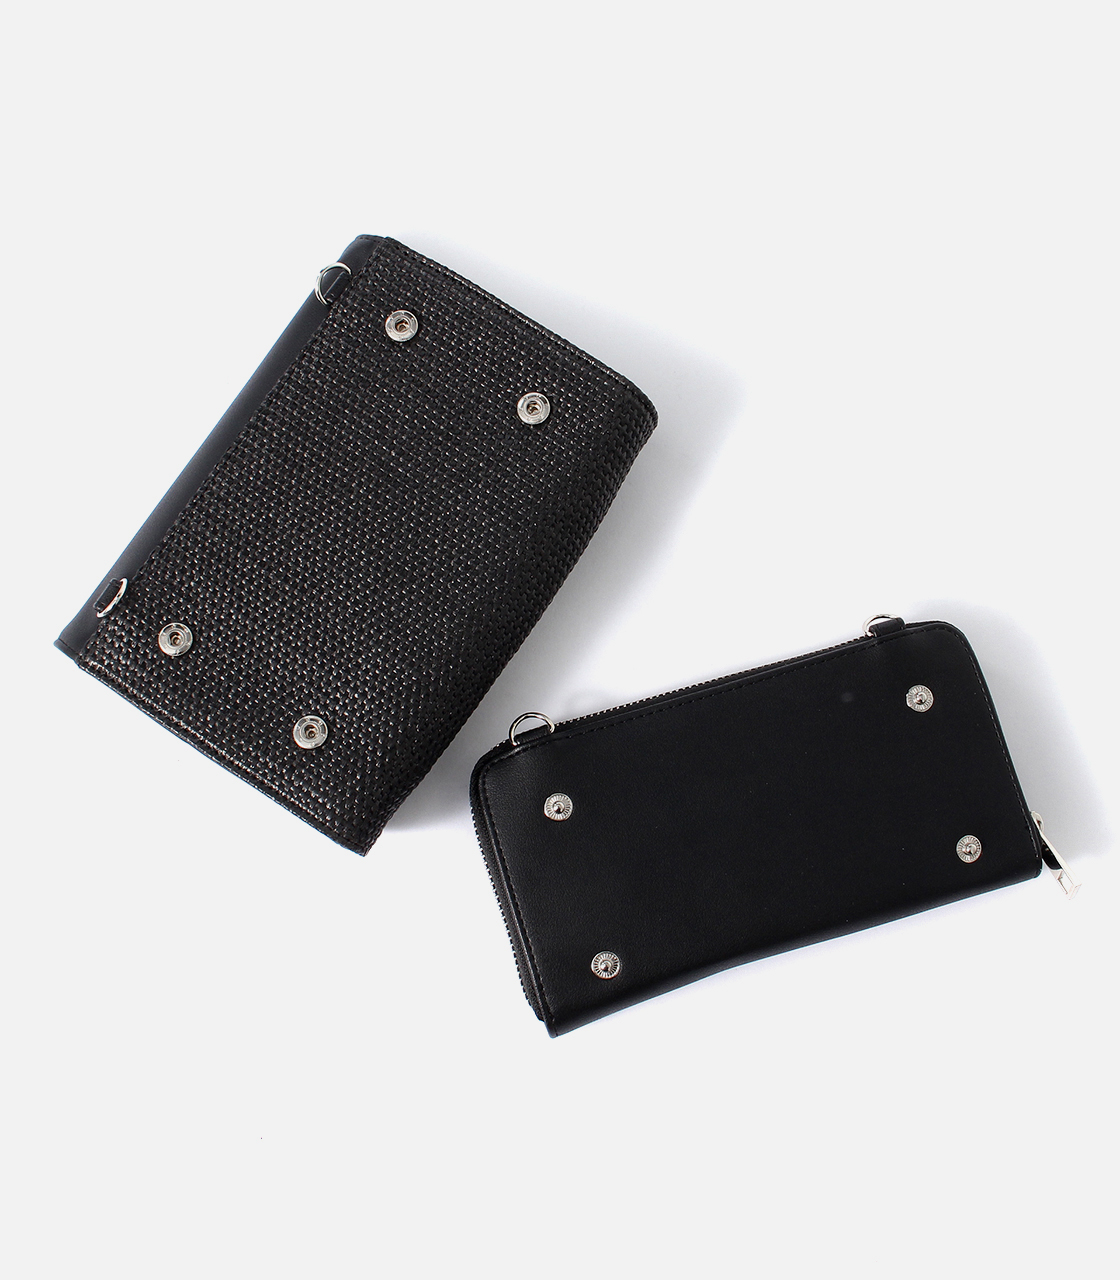 【AZUL BY MOUSSY】PAPER WALLET SHOULDER BAG 詳細画像 BLK 6